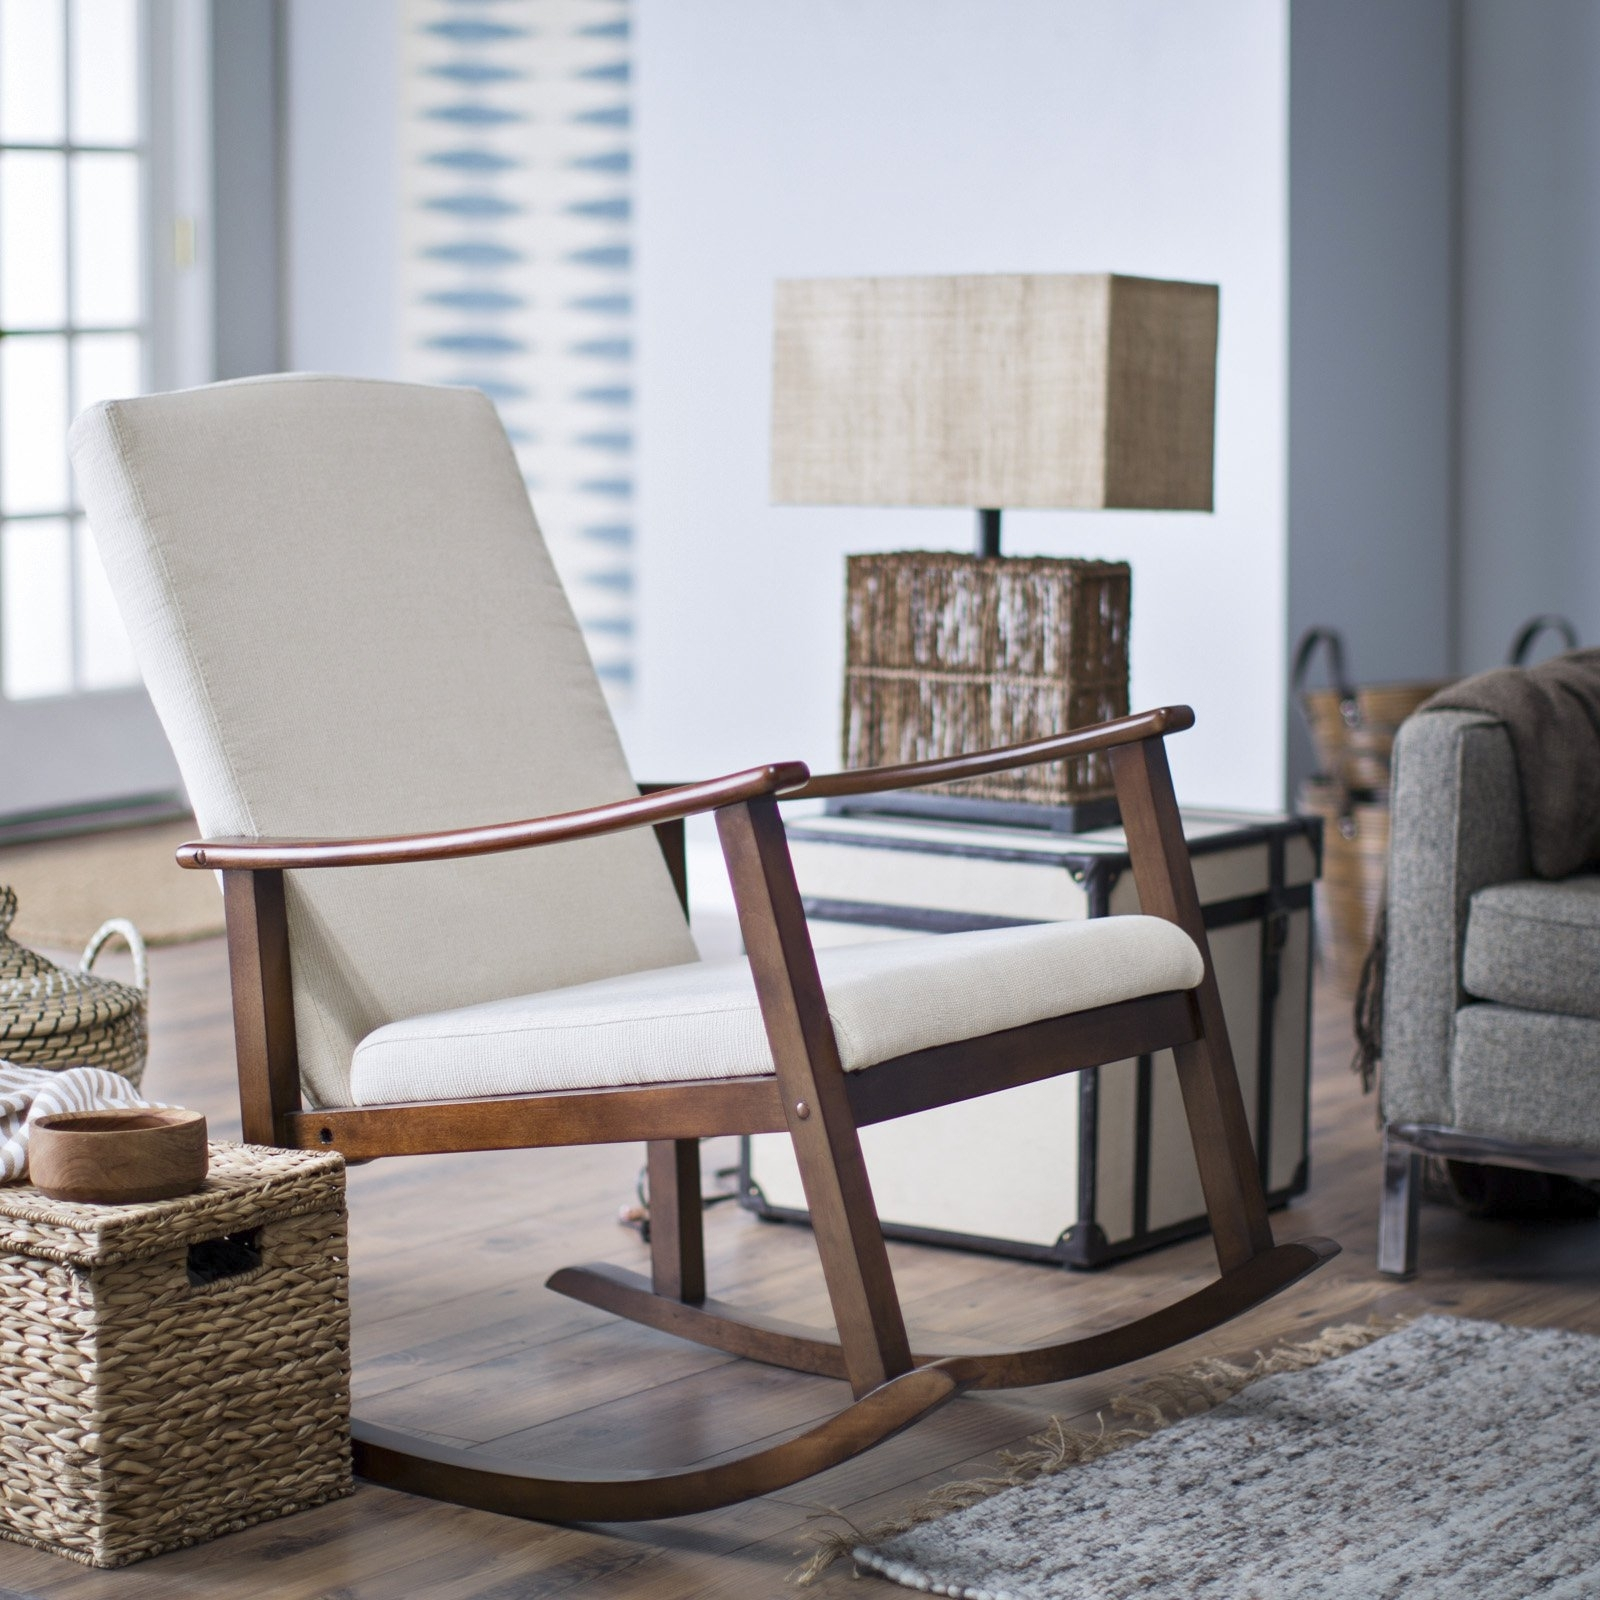 Belham Living Windsor Indoor Wood Rocking Chair – White | Hayneedle Throughout Rocking Chairs For Living Room (#2 of 15)